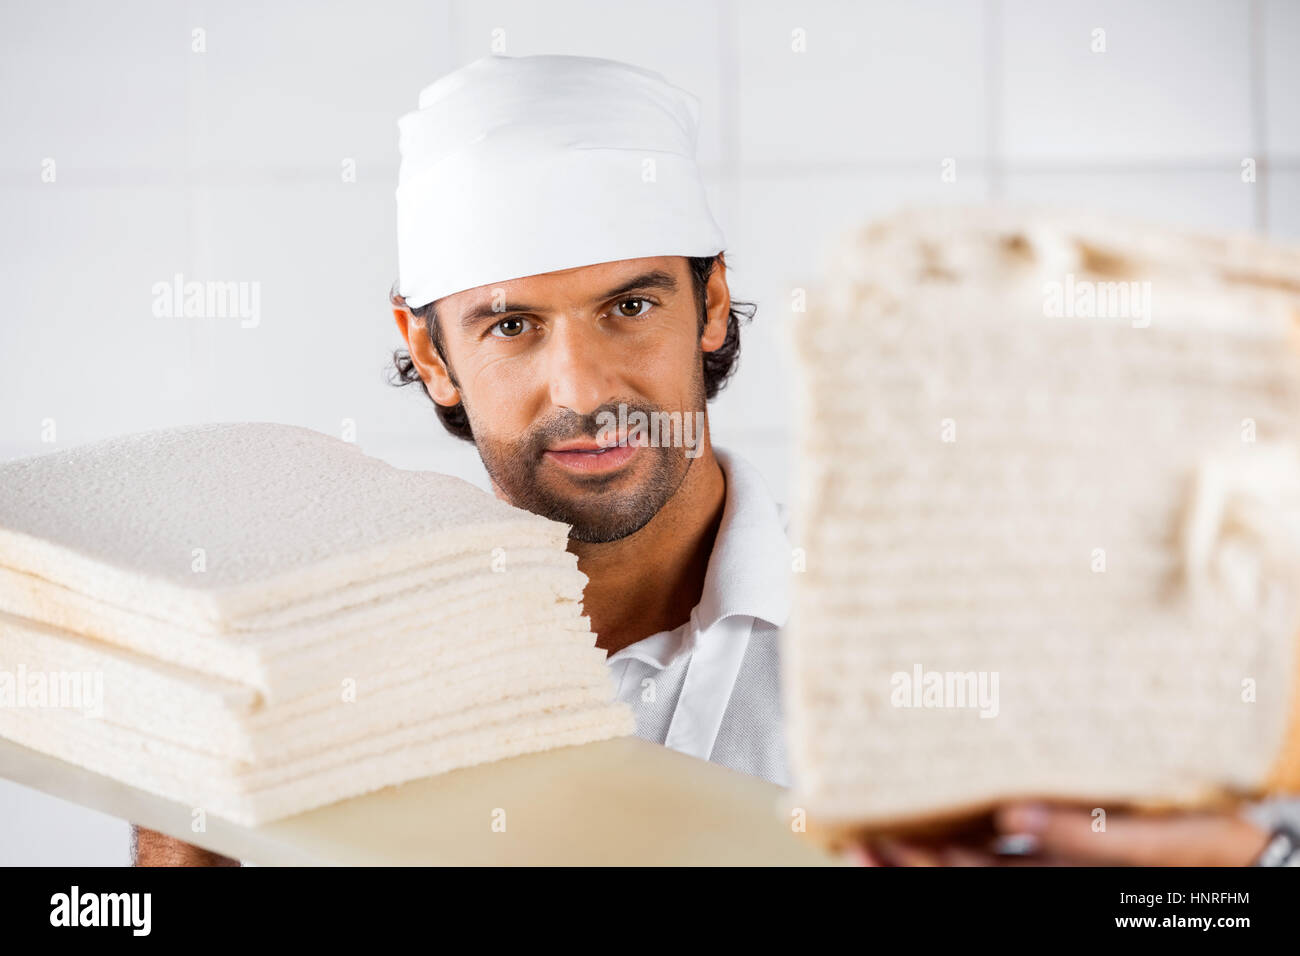 Confident Male Baker With Bread Slices - Stock Image